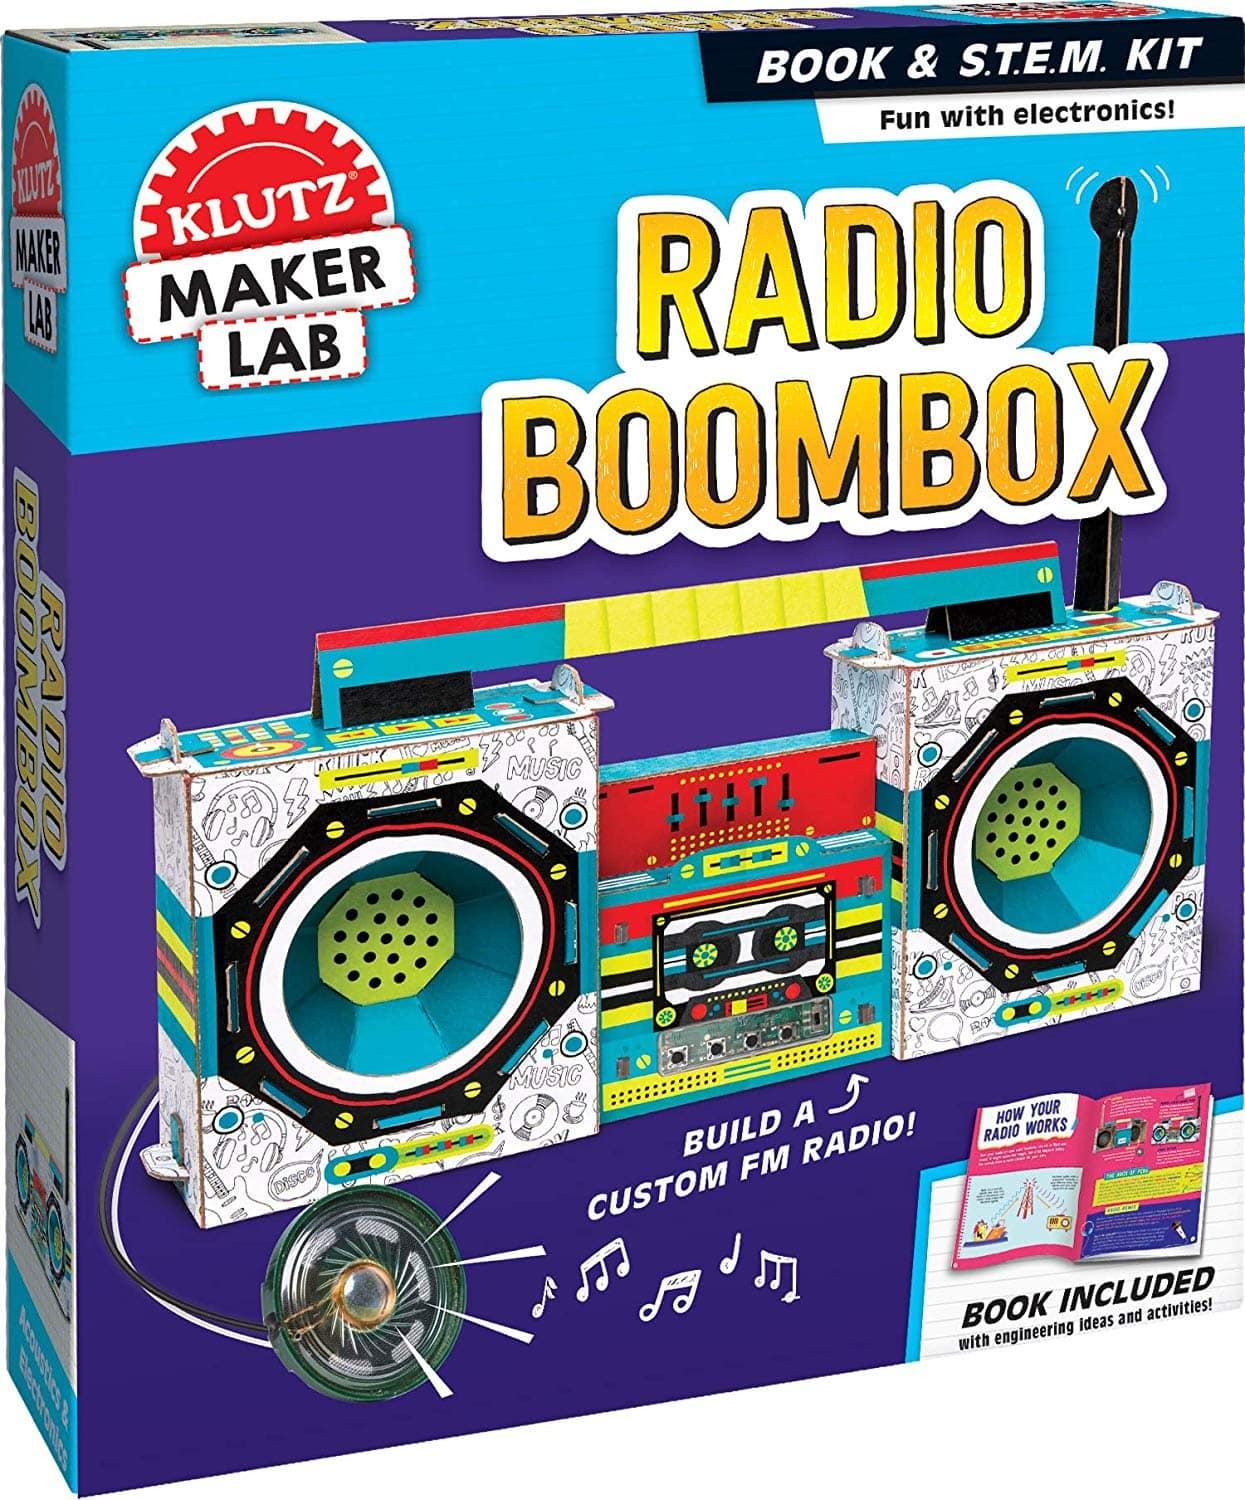 KLUTZ Maker Lab Radio Boombox $8.33 - Amazon